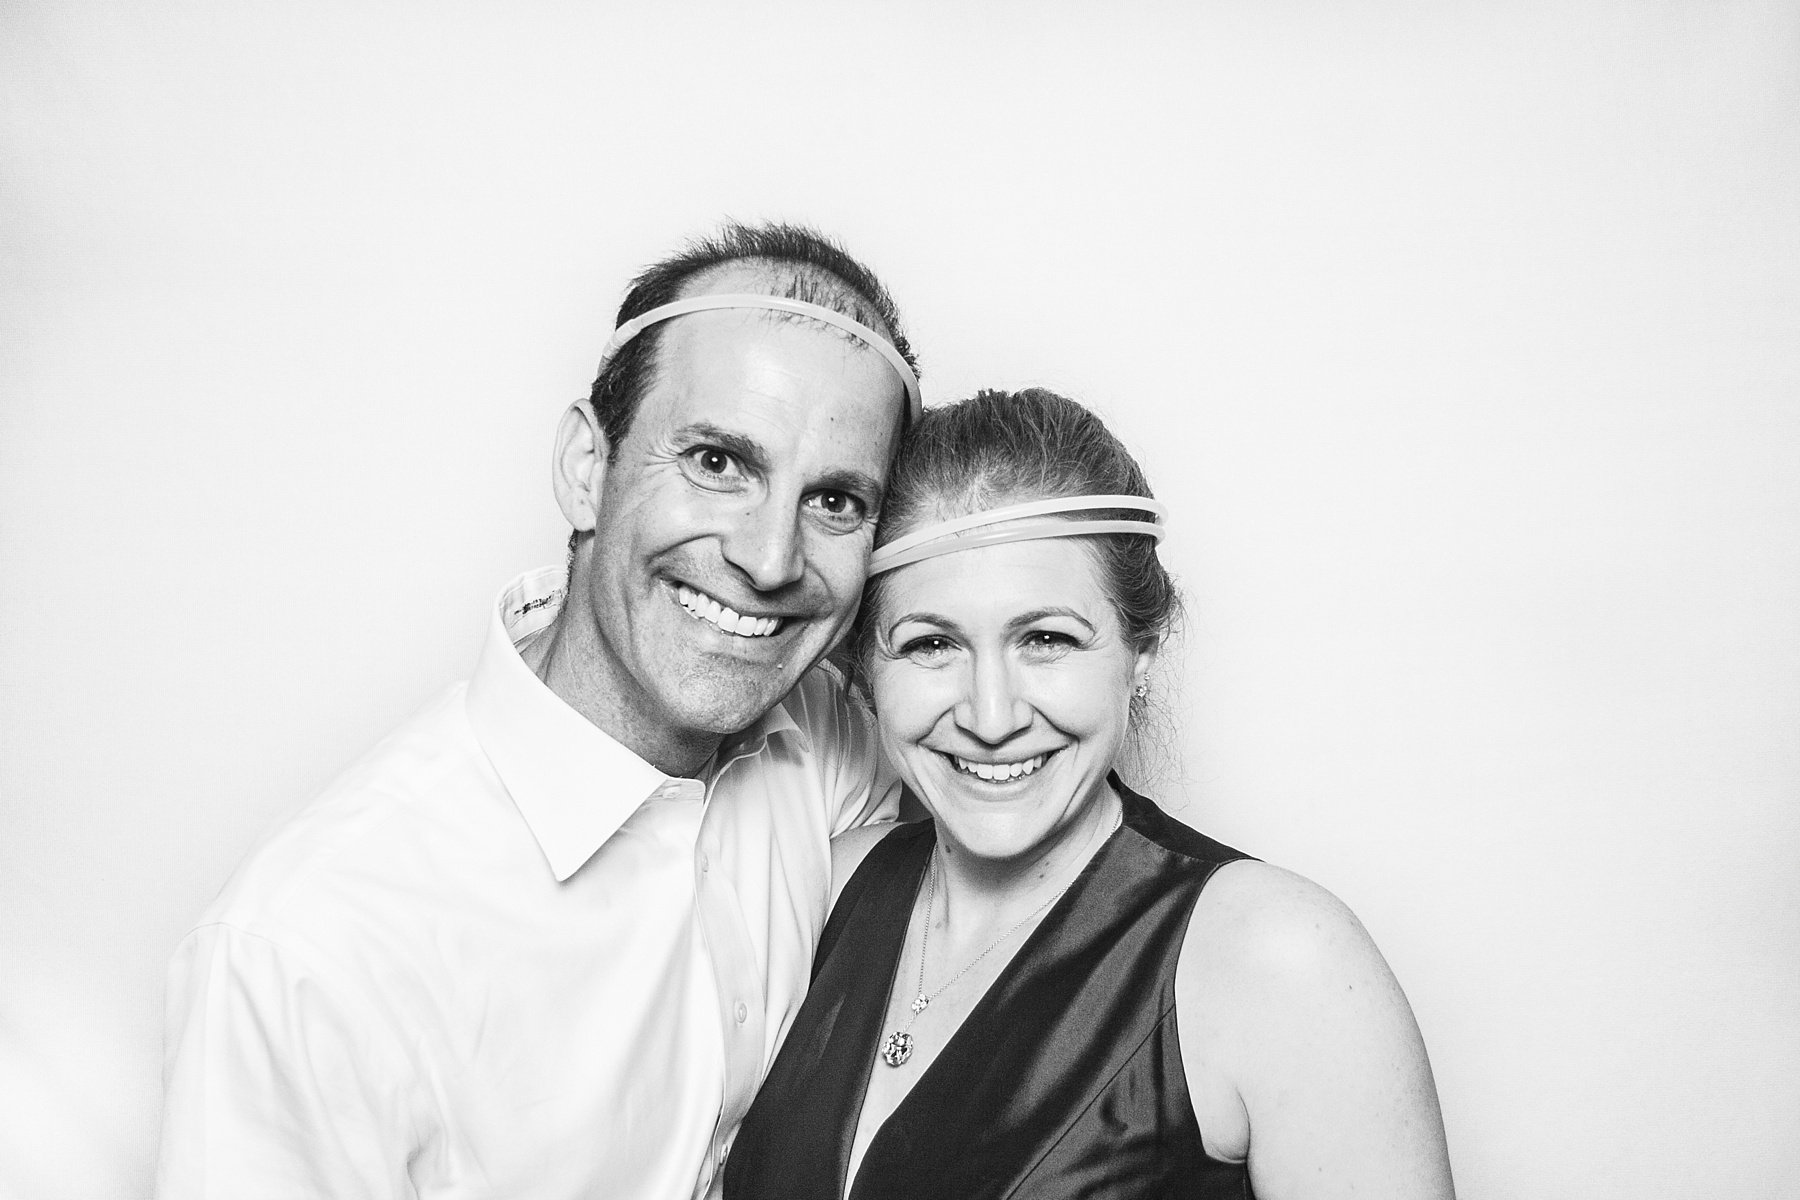 Fun Pictures of Wedding Guests 003.jpg